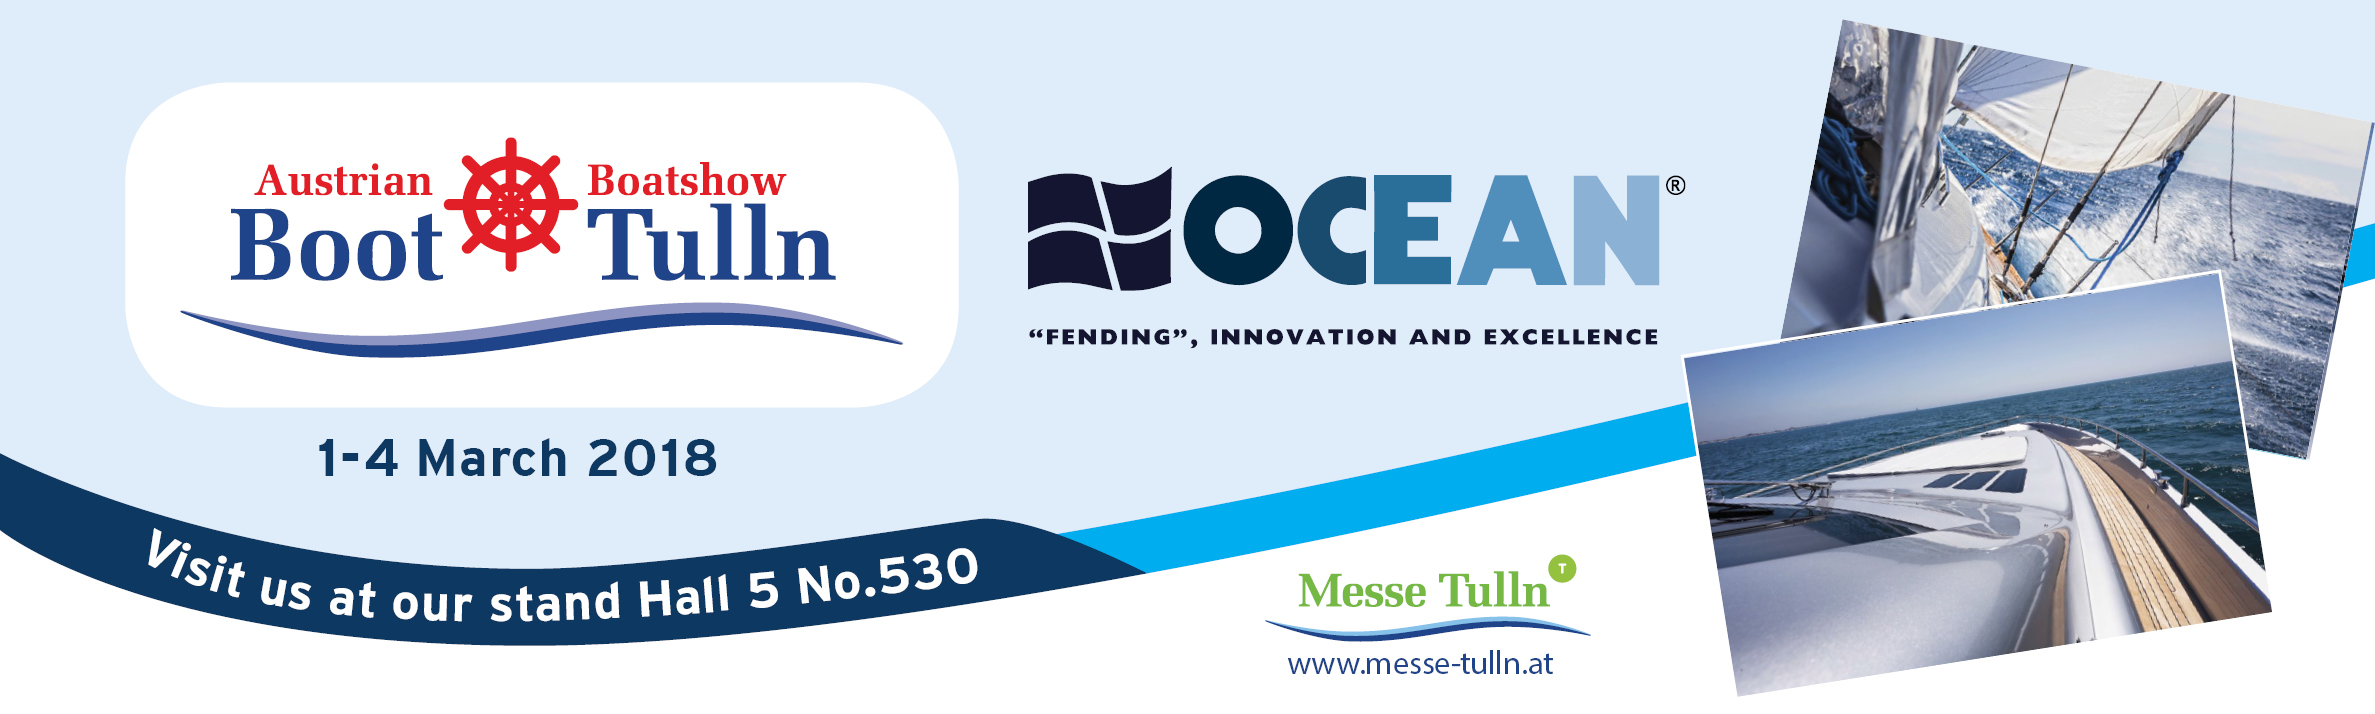 OCEAN at BOOT TULLN 2018 on 1-4 March 2018